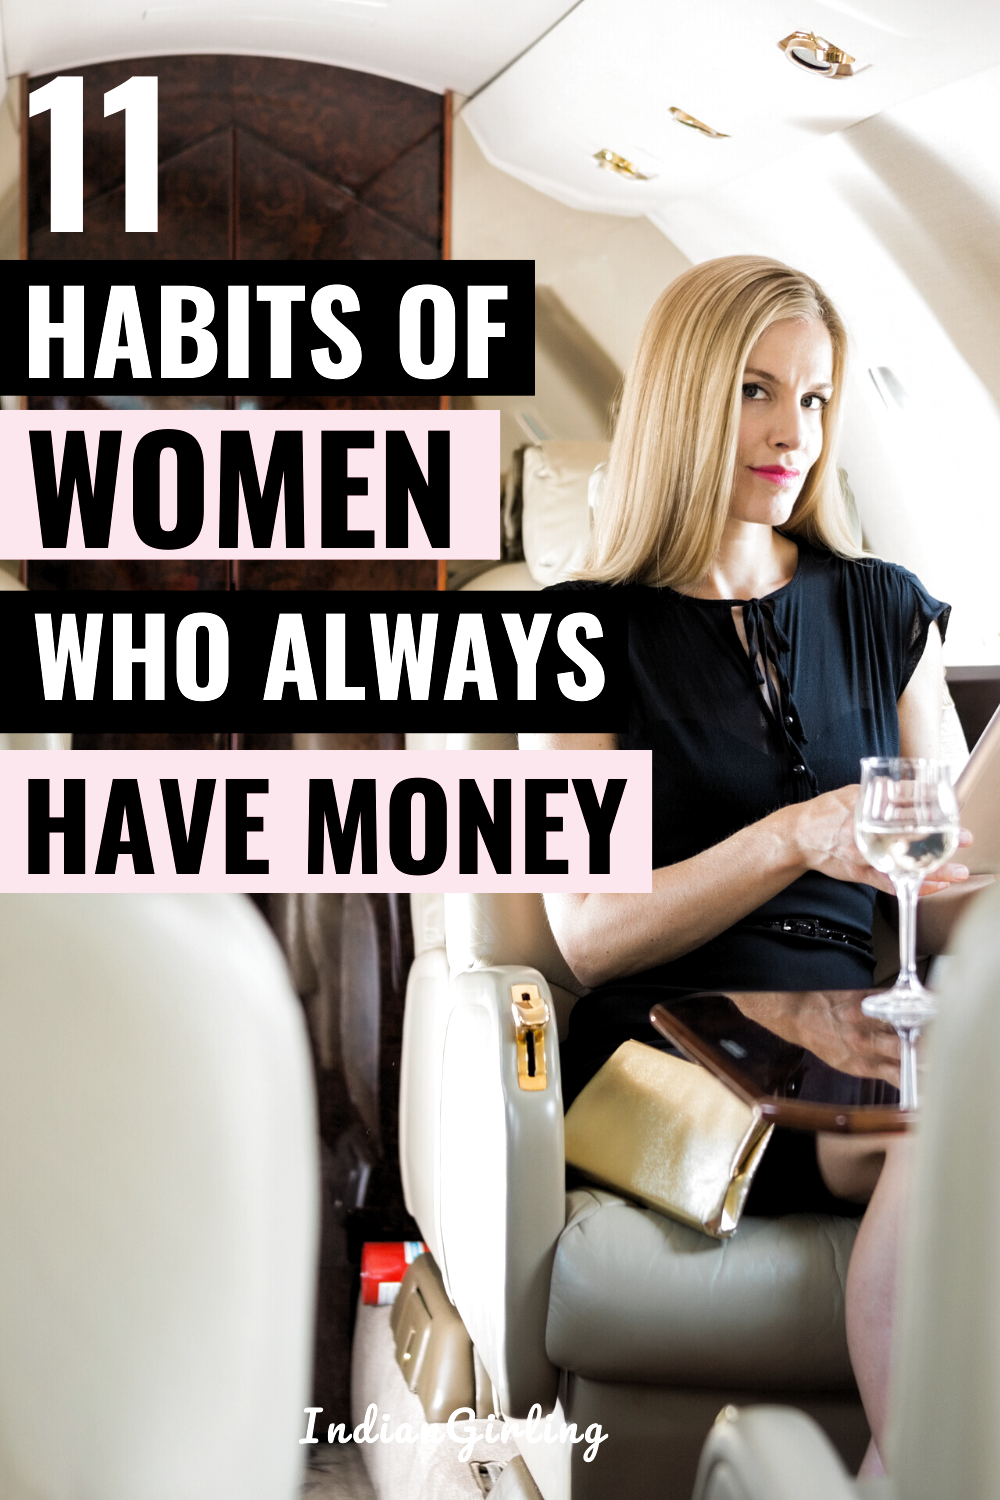 Ever wondered how rich women stay rich? Here are 11 financial habits of successful women who always have money! Emulate these money-making habits to generate successful results financially and always have more money than you need. Great personal finance and money-saving tips to help plan for your future! #financialhabits #budgetingtips #successfulwomen #buildwealth #moneymindset #girlboss